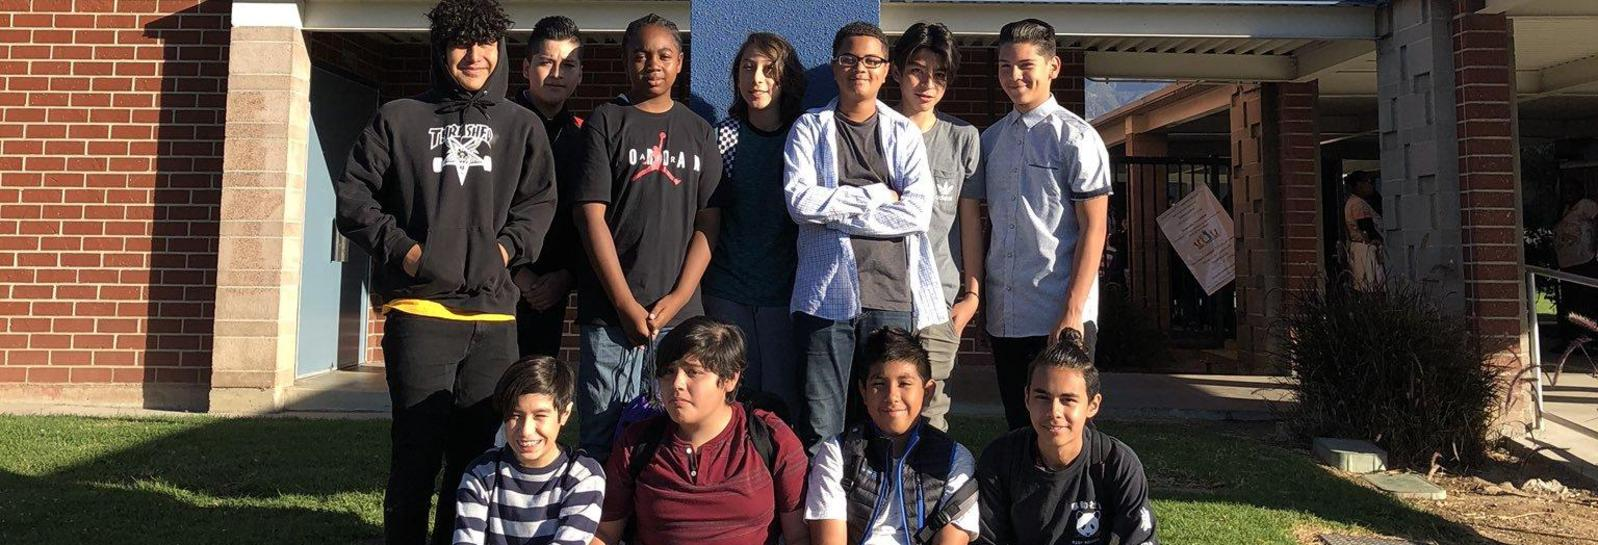 Harrison Students at Young Men's Conference -The YMC is set out to educate, inspire and establish a positive change in the young men across Pomona Unified! Shoutout to Mrs. Castellanos for being an awesome counselor!